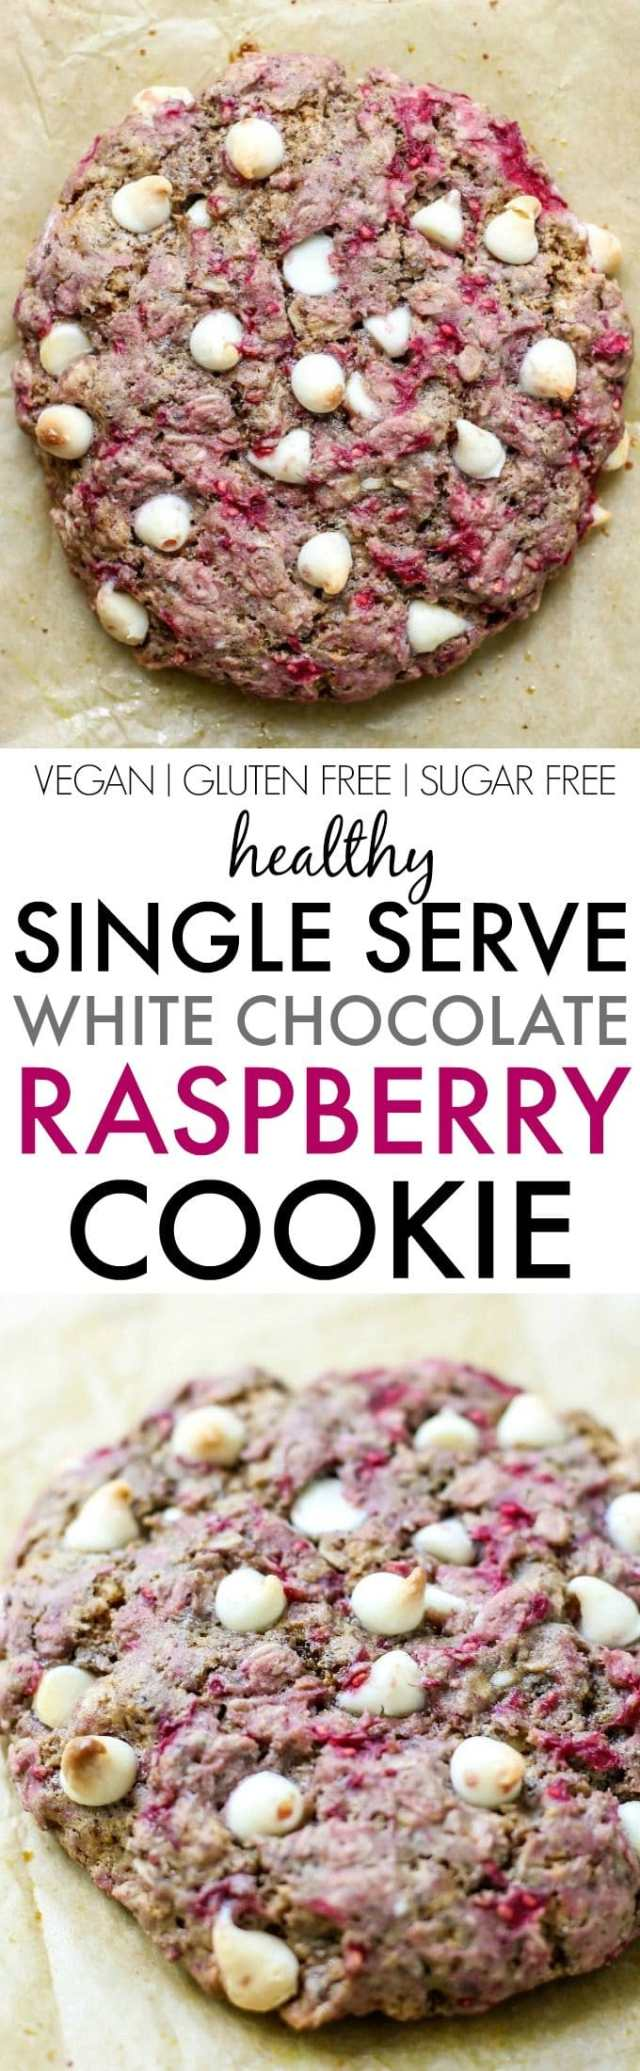 Healthy SINGLE SERVE GIANT White Chocolate Raspberry Cookie- Thick, chewy and slightly soft, it's perfectly portioned and secretly healthy! It's made with wholesome ingredients and a tested sugar free option too! {vegan, gluten free, sugar free recipe}- thebigmansworld.com